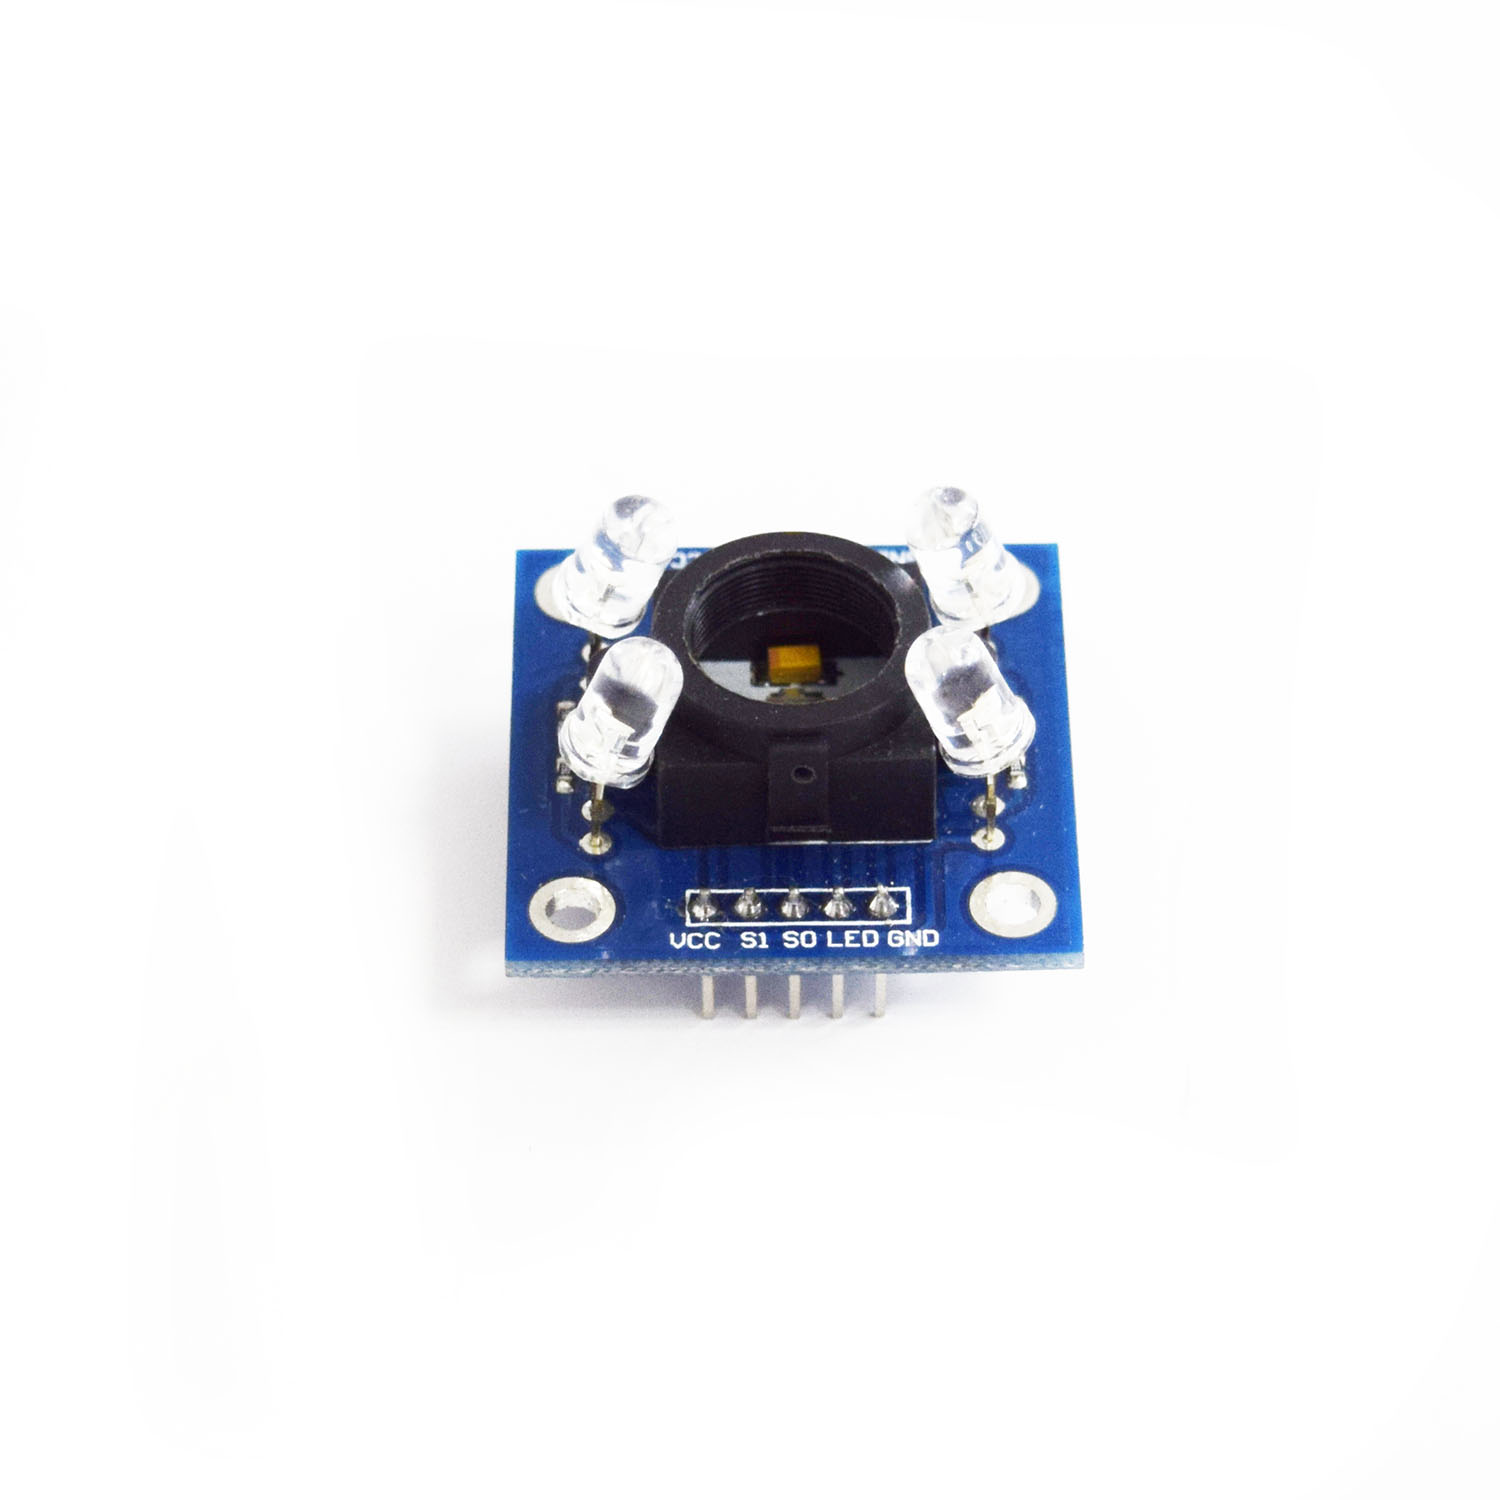 Gy 31 Tcs230 Tcs3200 Color Sensor Recognition Module For Arduino Sensing Tutorial Tsc230 Tsc3200 Circuit Product Pictures Datasheet